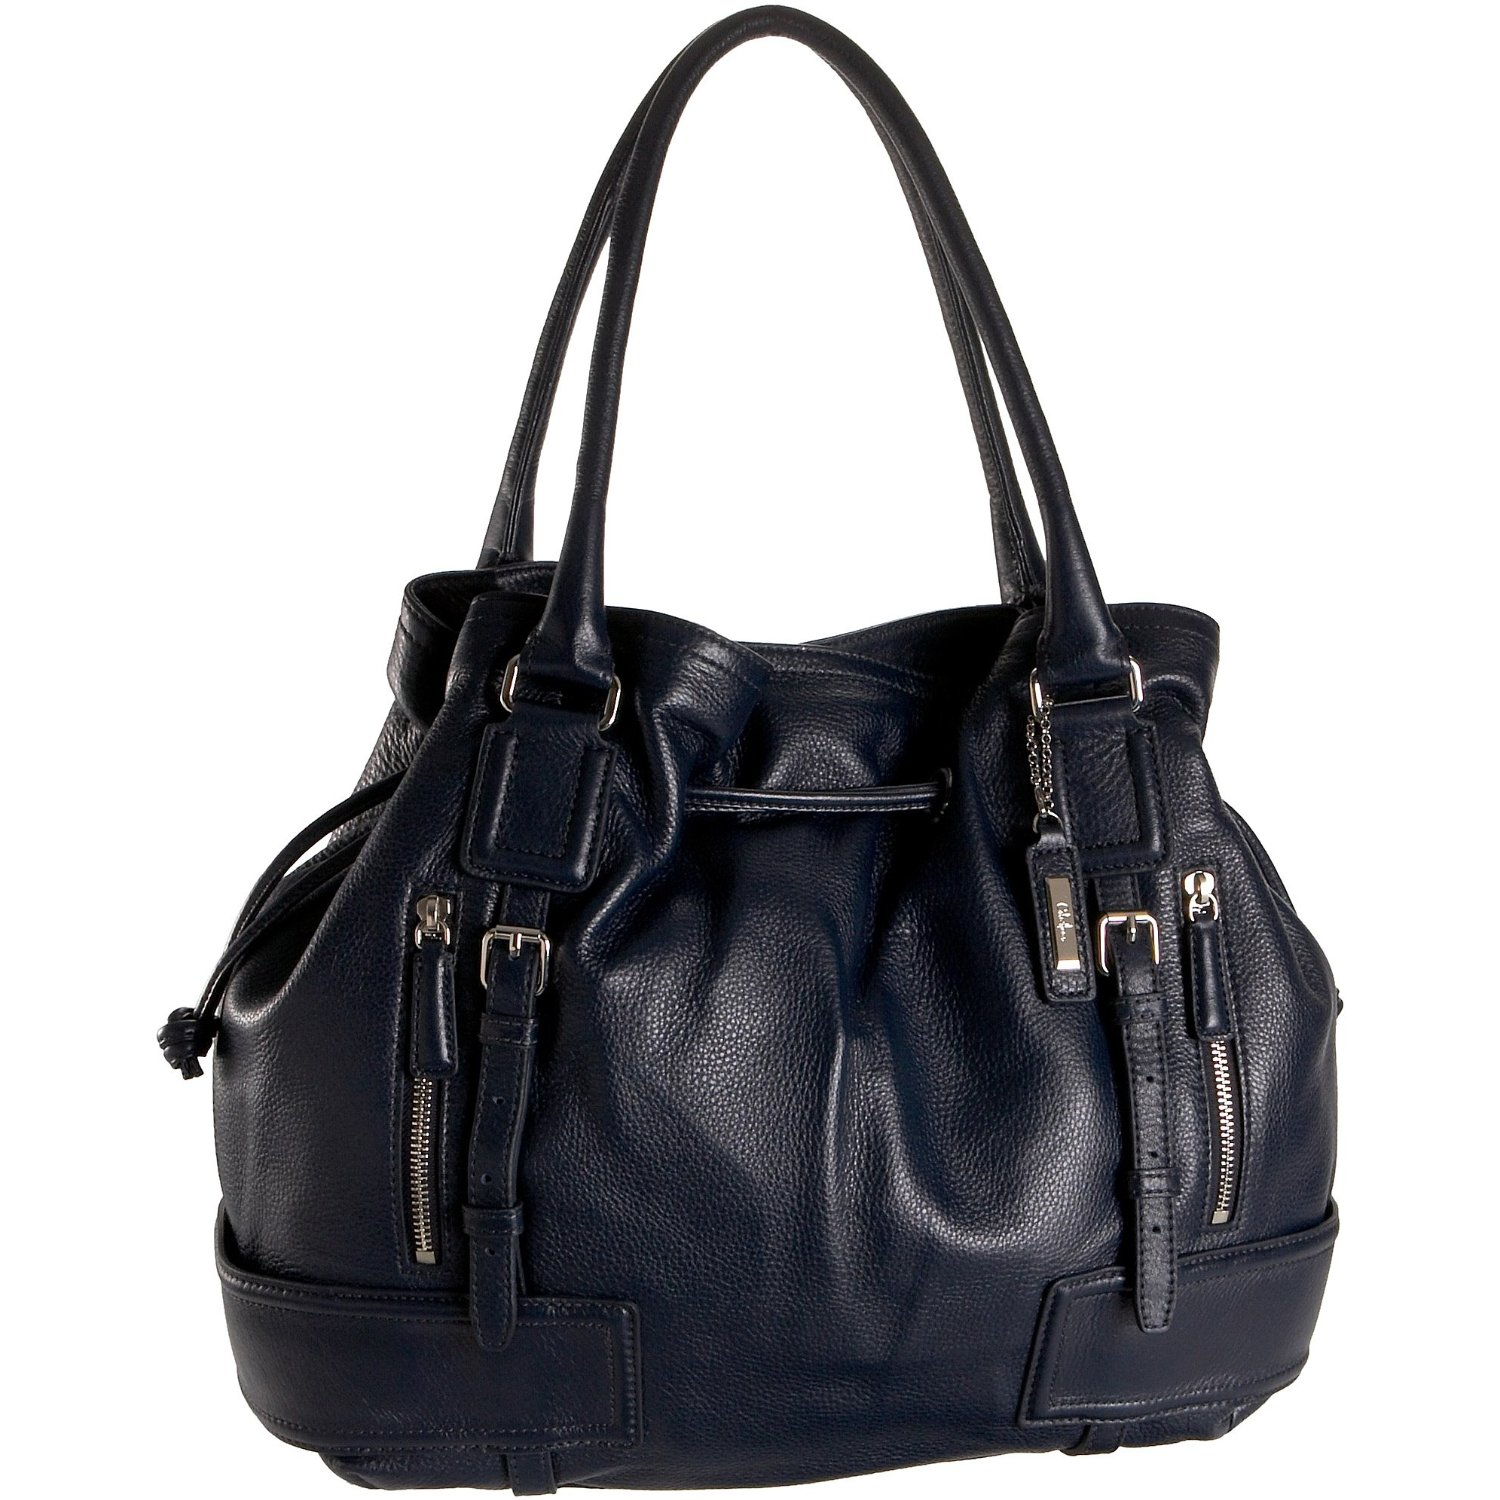 014a6aa442e9 Coach Bags India Online Shopping | Stanford Center for Opportunity ...